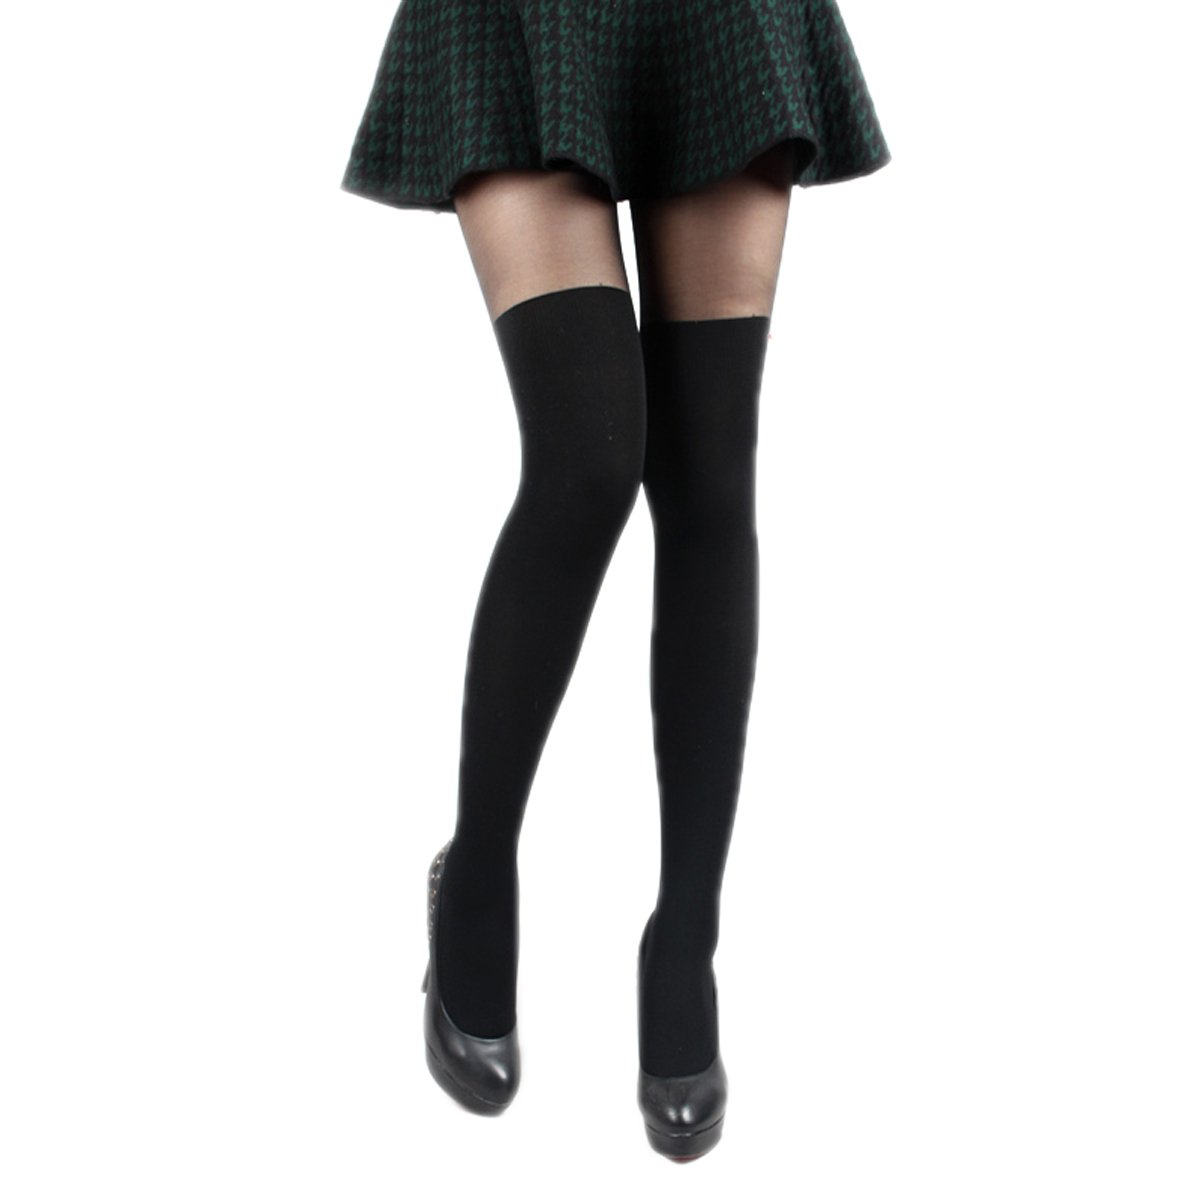 18MM Sheer Mock Over The Knee Suspender Tights Pantyhose Stockings